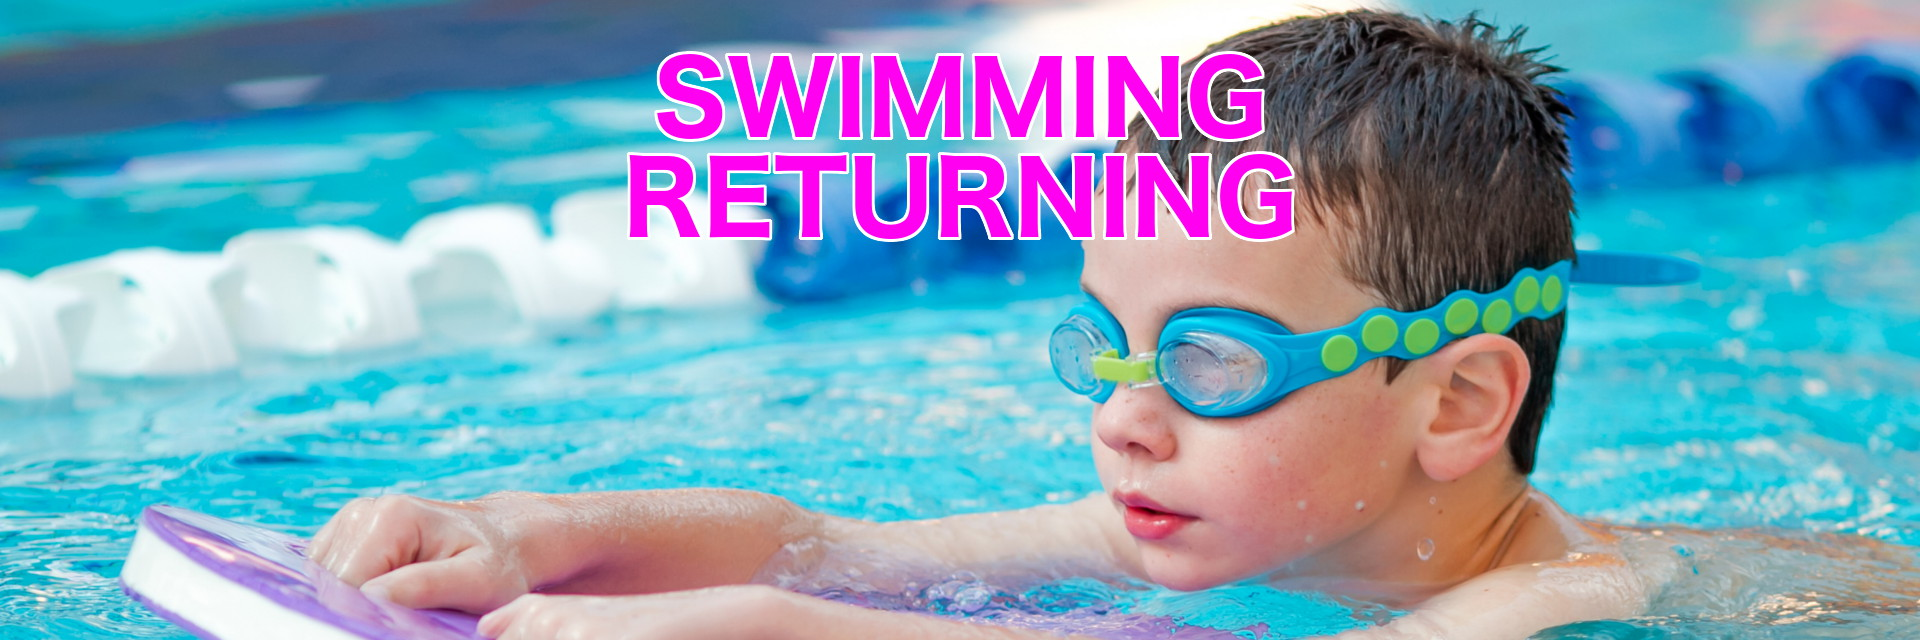 Swimming returning